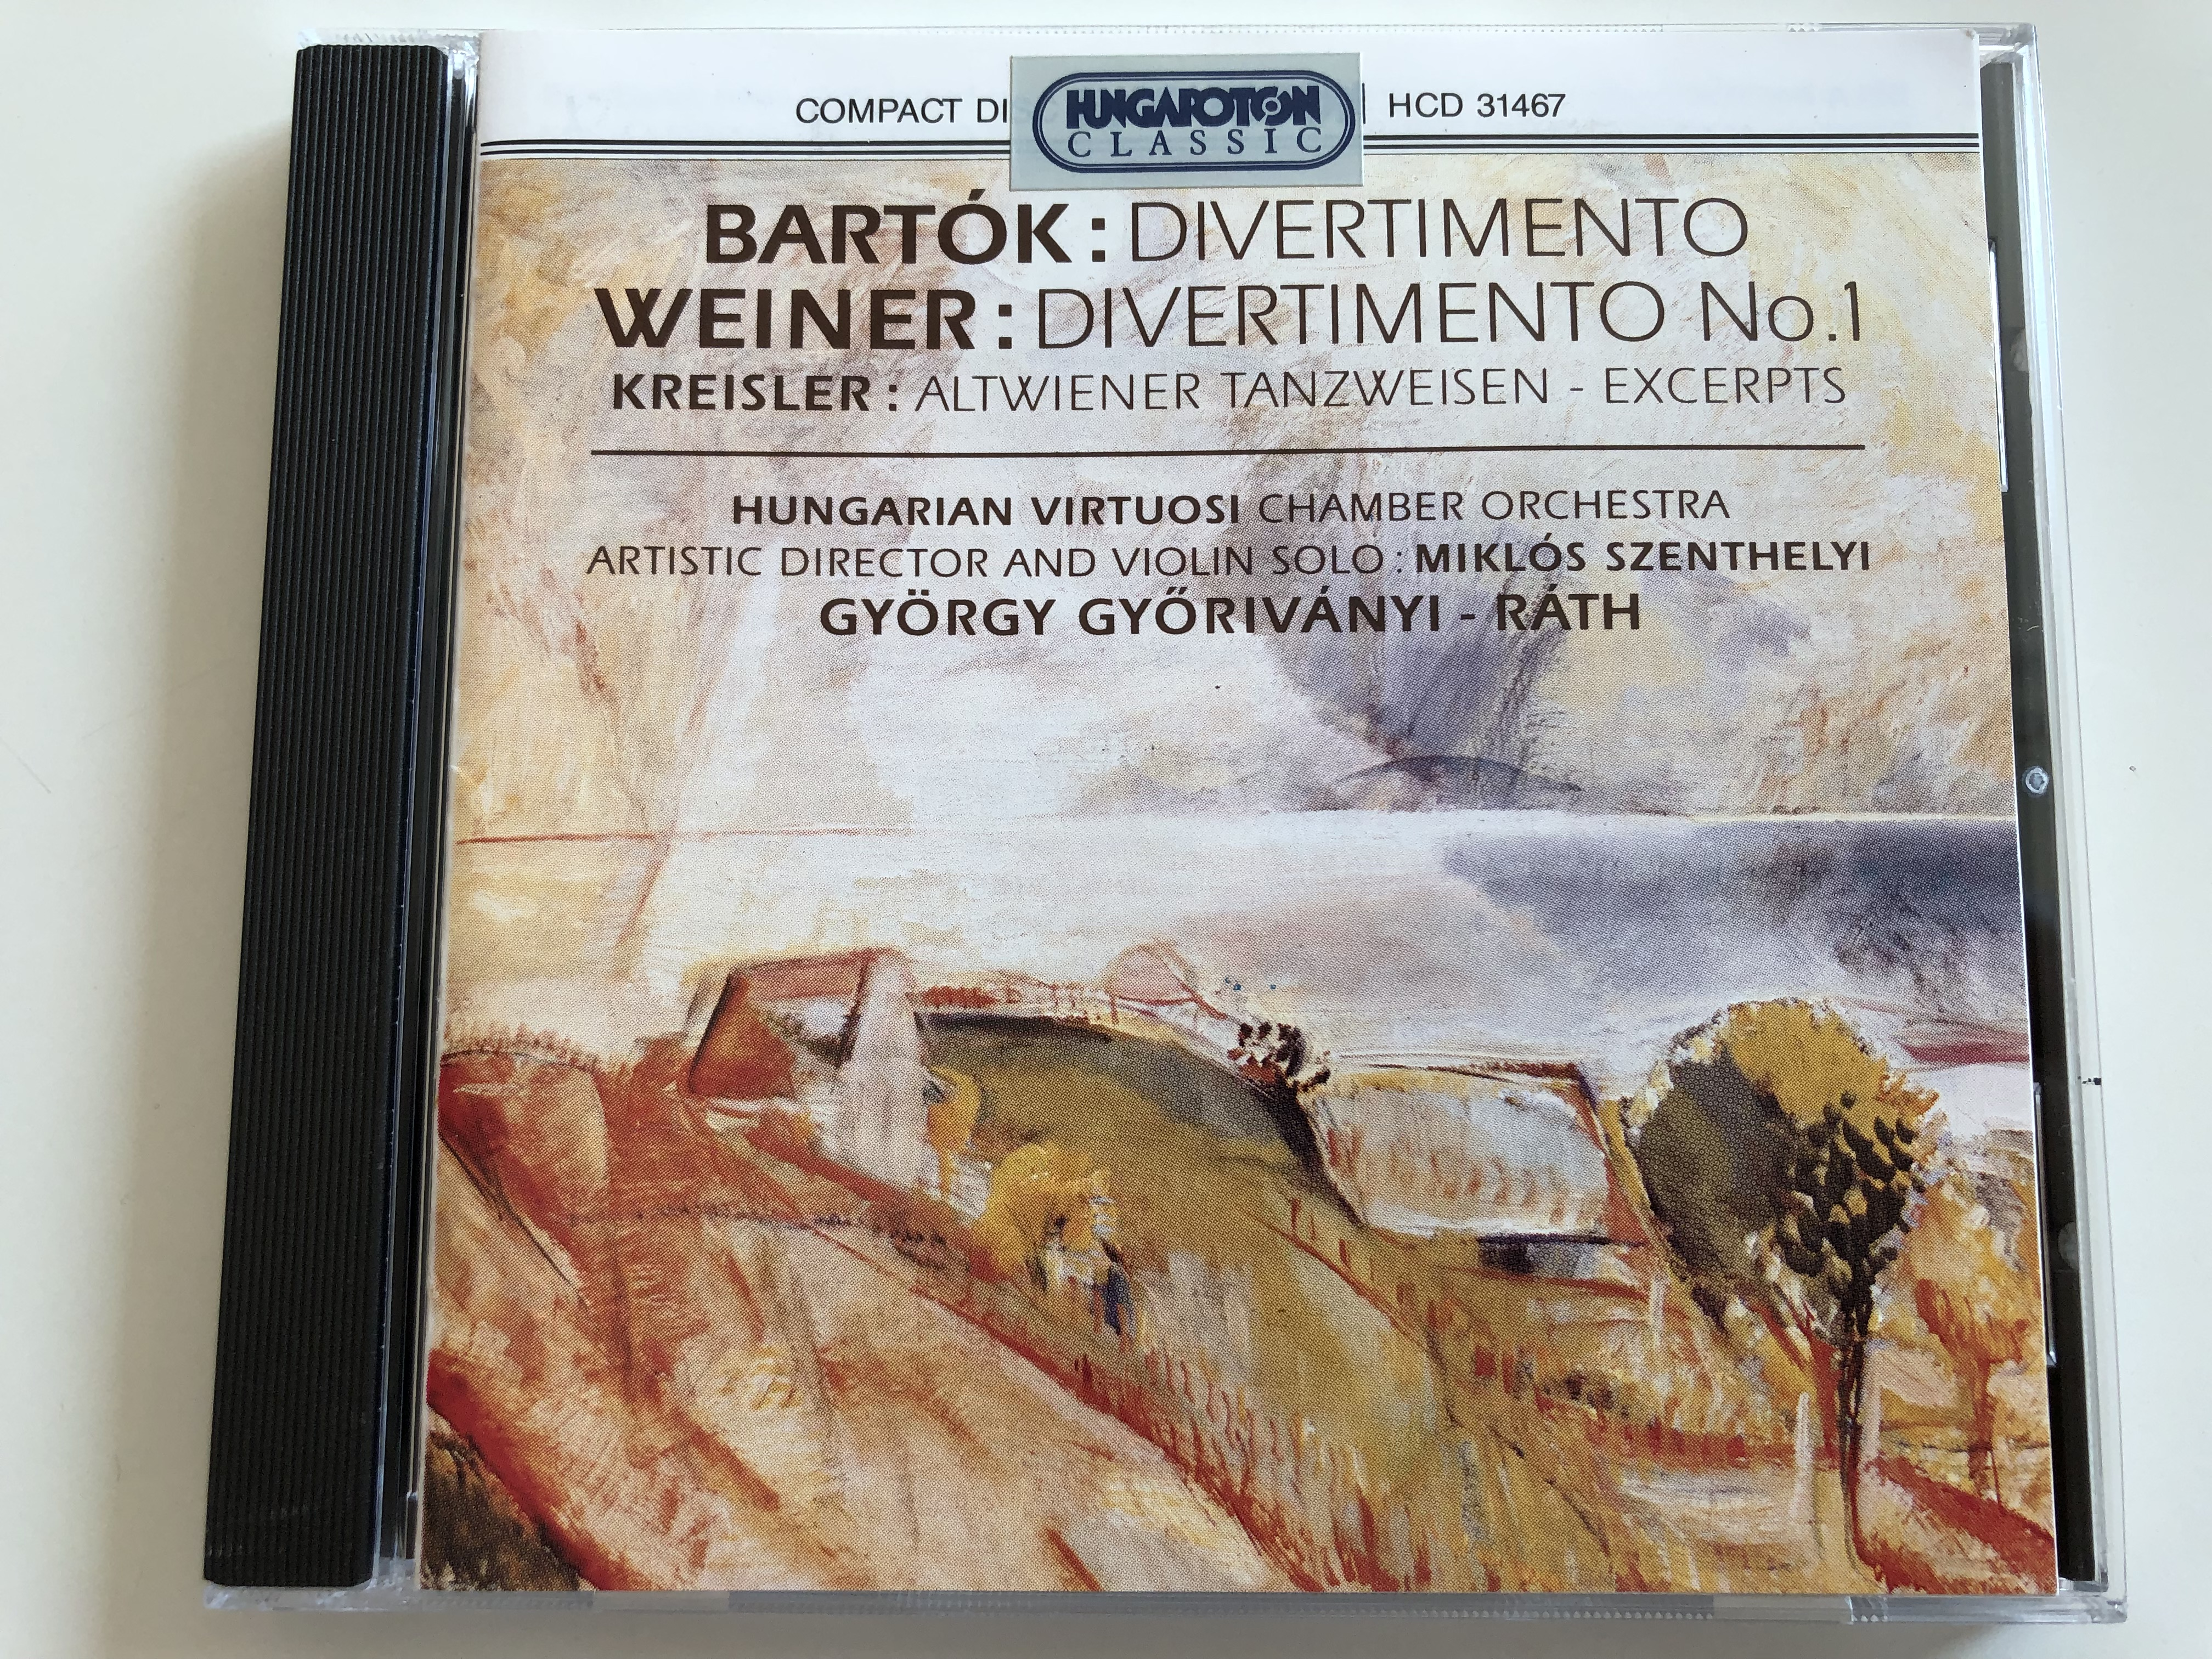 bart-k-divertimento-weiner-divertimento-no.1-kreisler-altwiener-tanzweisen-excerpts-hungarian-virtuosi-chamber-orchestra-art.-director-violin-solo-mikl-s-szenthelyi-conducted-by-gy-rgy-gy-riv-nyi-r-th-hungaroton-1-.jpg